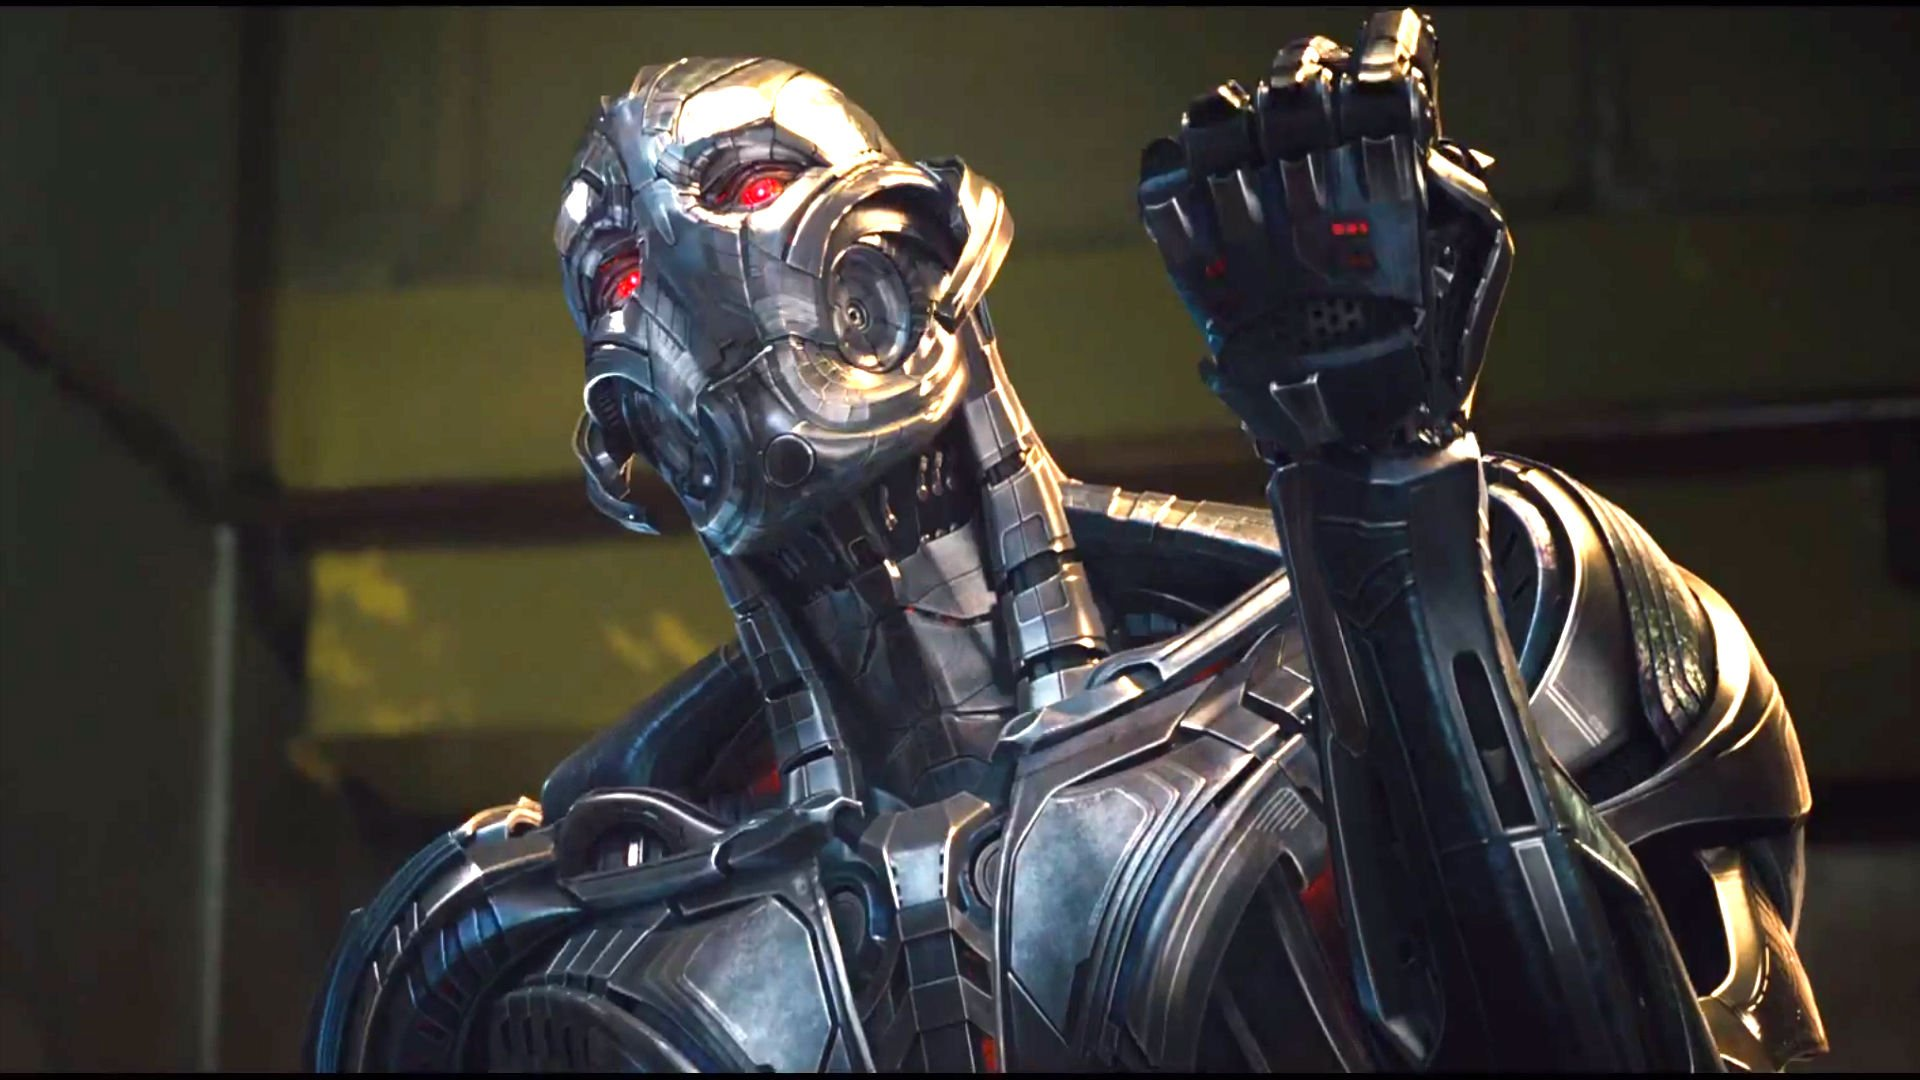 Photo of 3 Most Amazing Ultron Stories That Should Be Made As Films